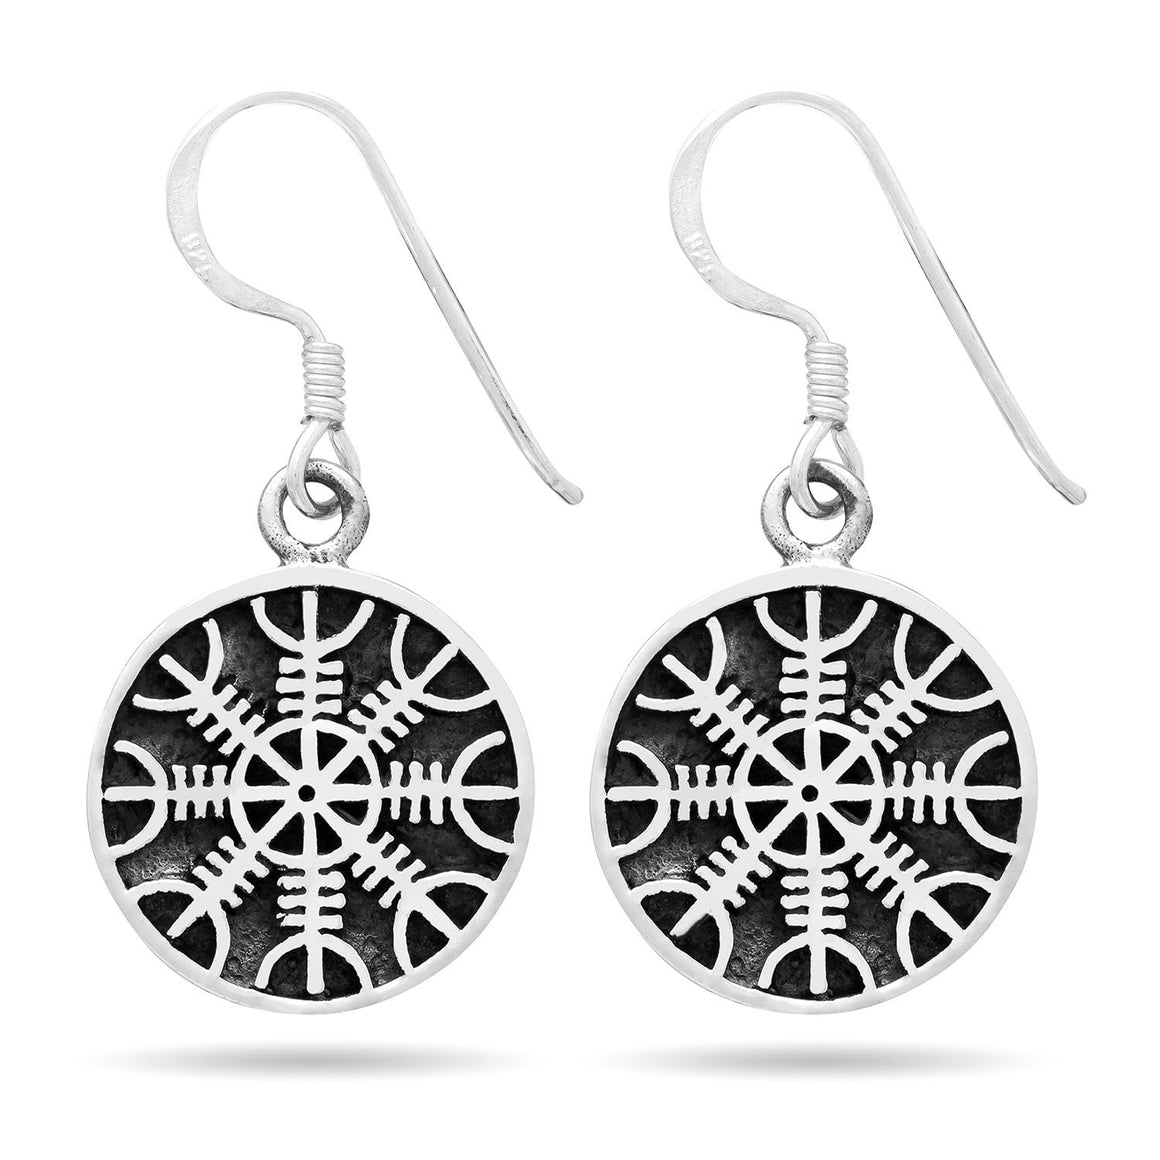 925 Sterling Silver Viking Helm of Awe Earrings Set - SilverMania925